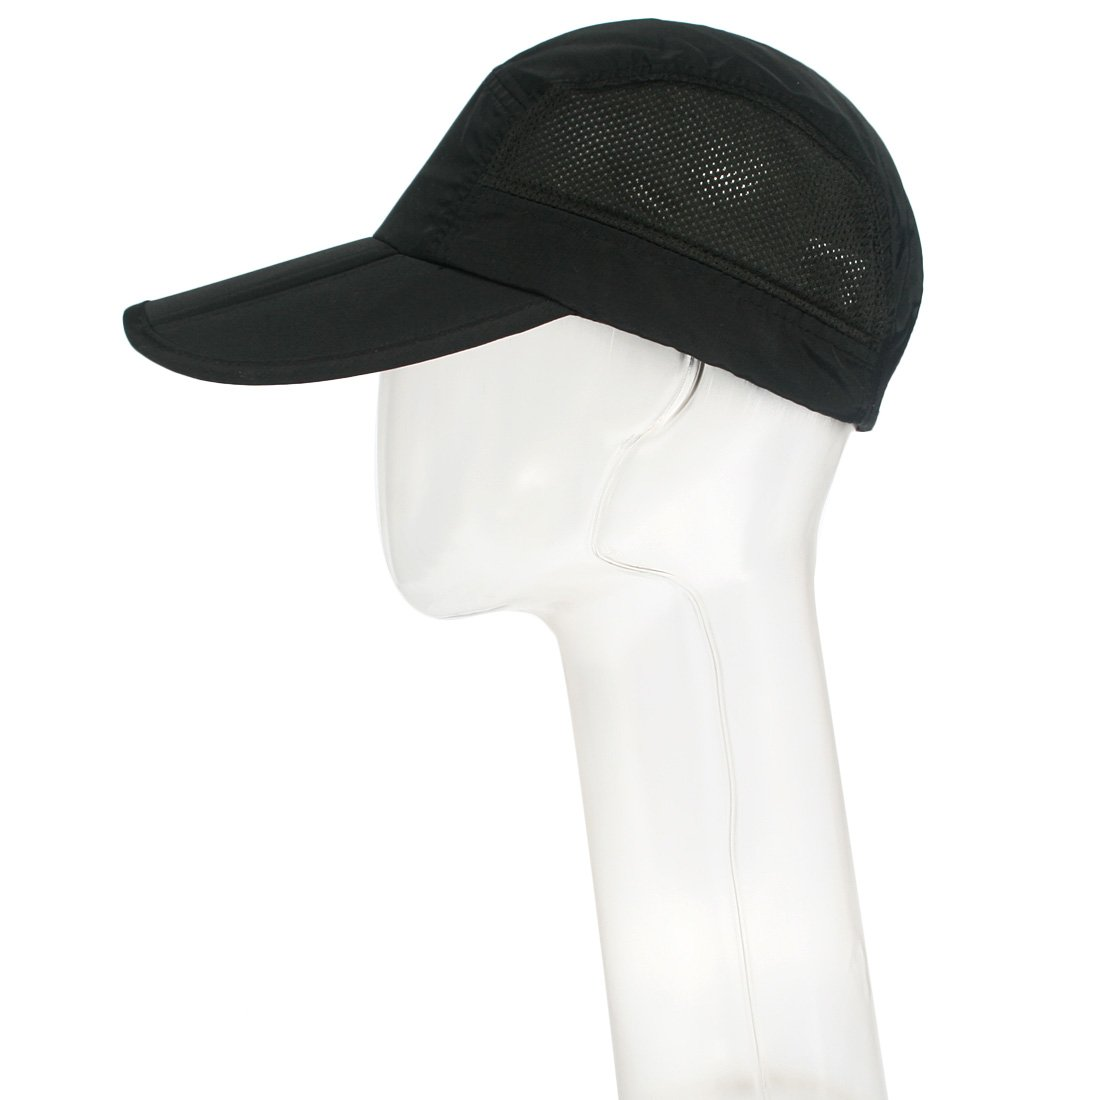 c759017bfd4be kilofly Mens Foldable Lightweight Quick Dry Adjustable Outdoor Cap, Set of 2:  Amazon.co.uk: Clothing